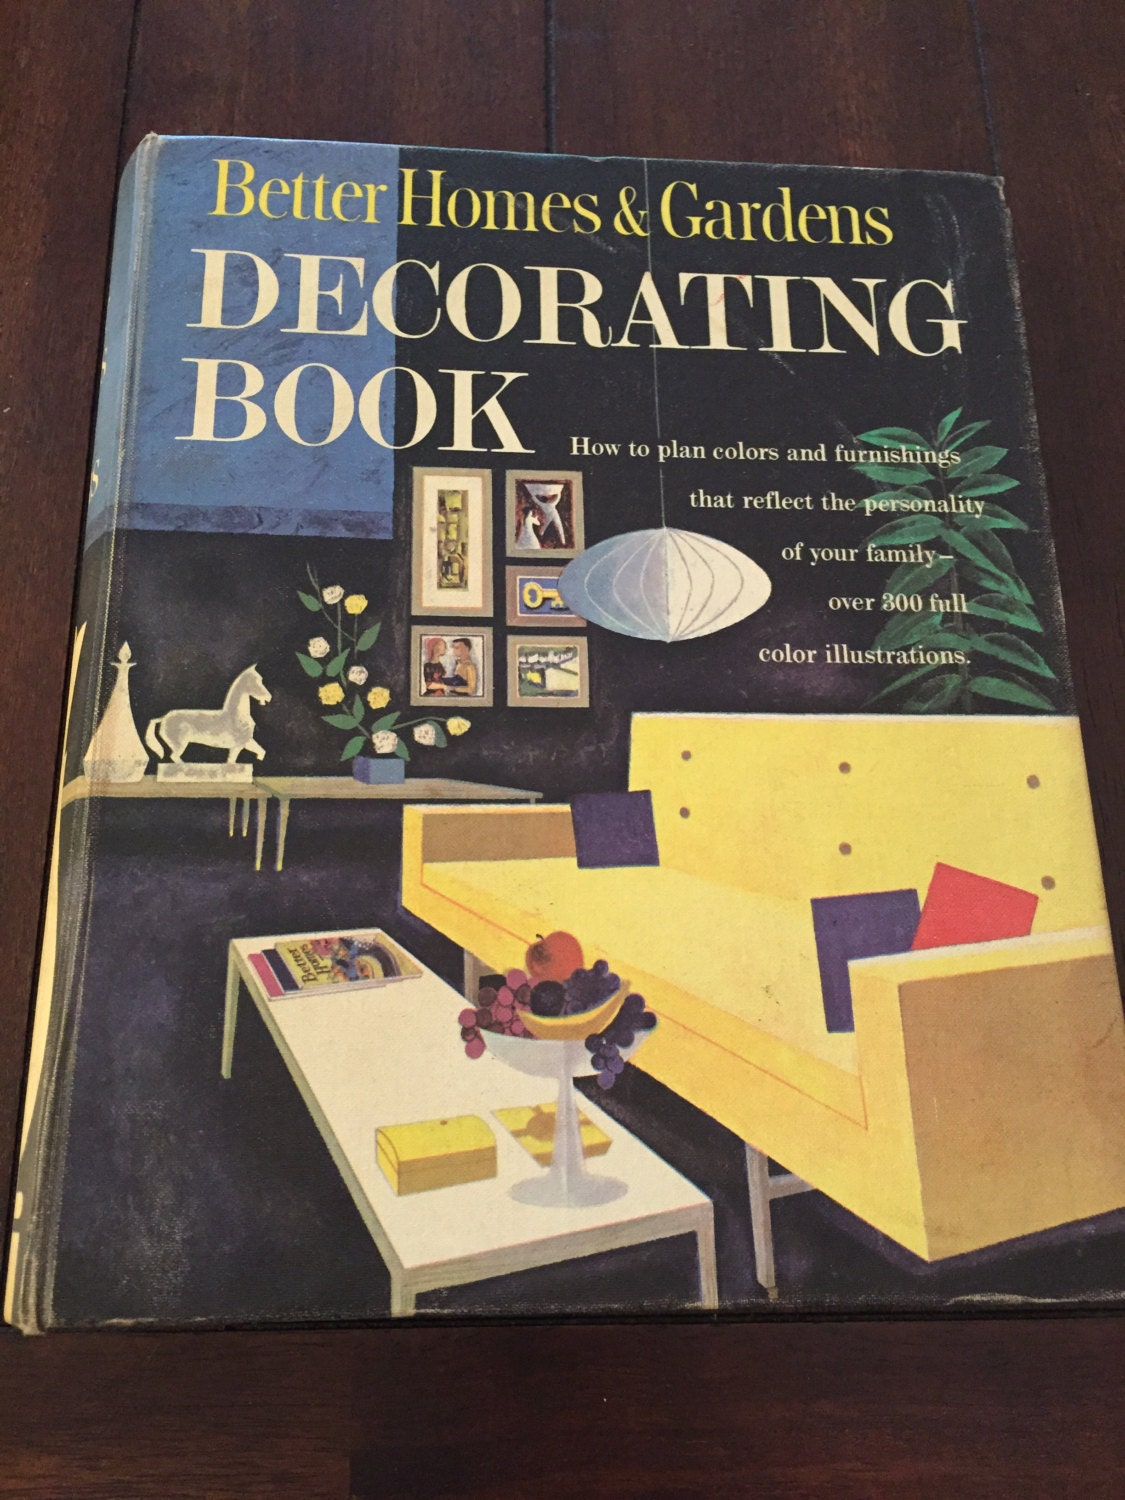 Better homes and gardens decorating book 1961 vintage book Bhg g